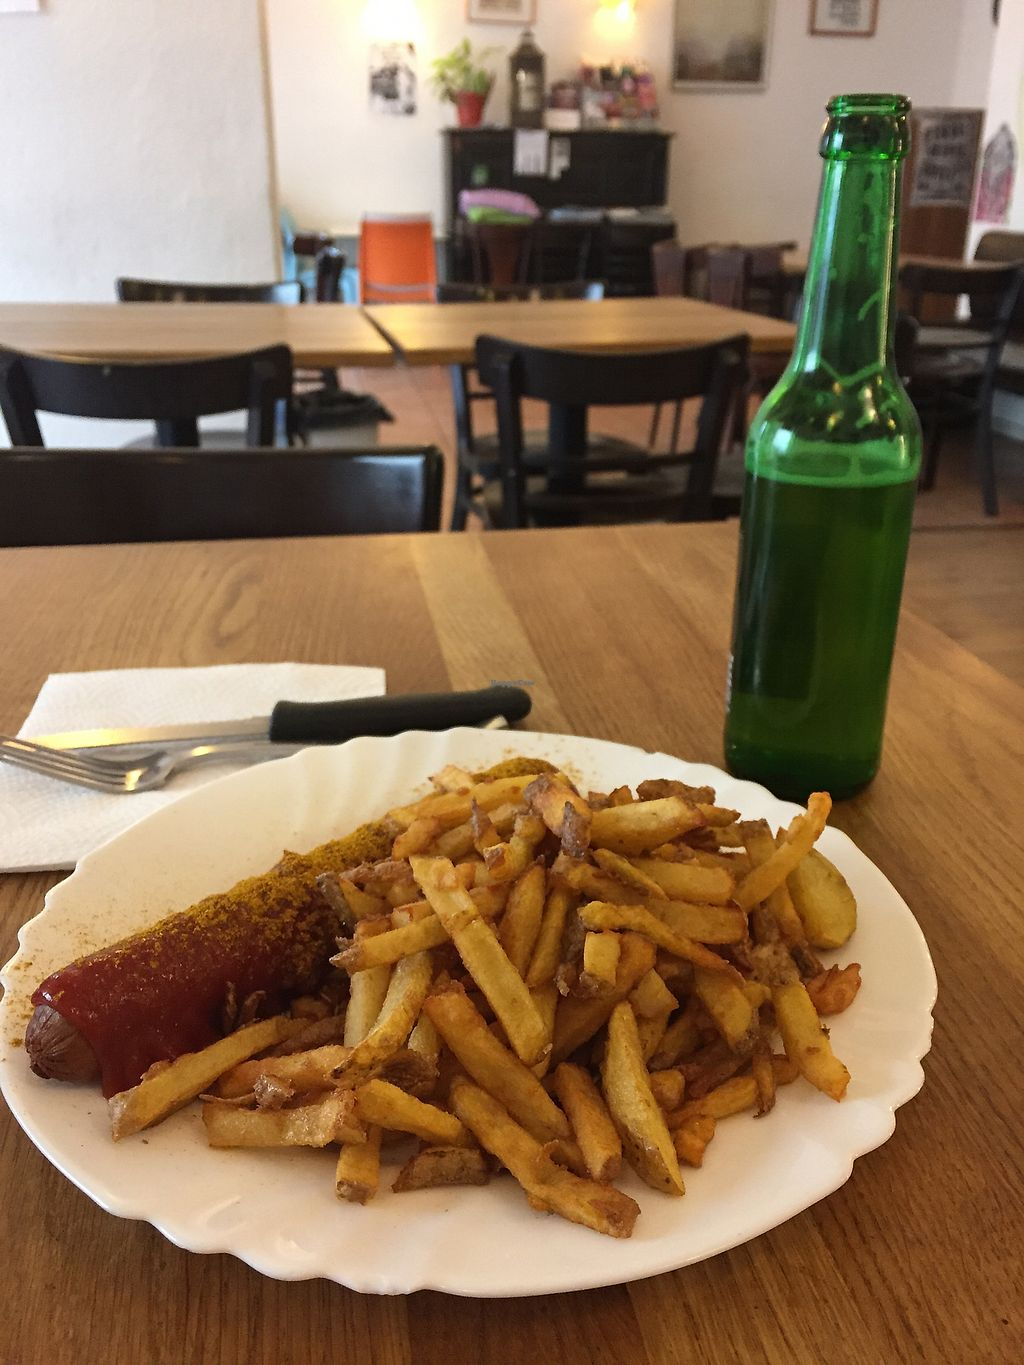 """Photo of CLOSED: vego Foodworld  by <a href=""""/members/profile/blackoutrishi"""">blackoutrishi</a> <br/>Currywurst and fries  <br/> November 23, 2017  - <a href='/contact/abuse/image/21142/328531'>Report</a>"""